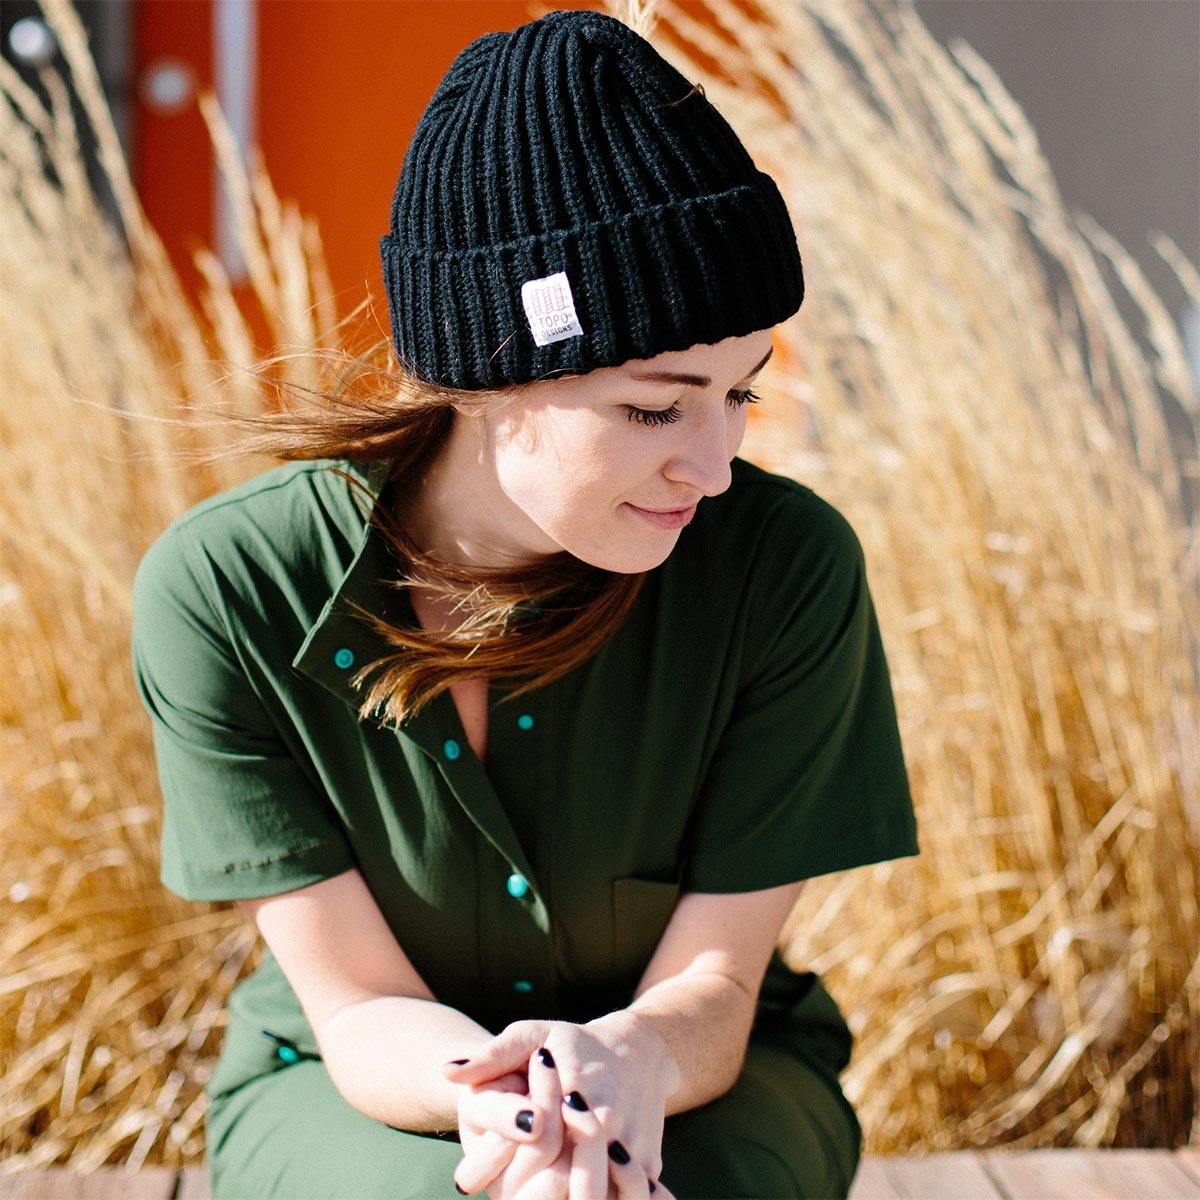 Topo Designs Wool Beanie Black, 100% merino wool beanie features a chunky, loose knit weave.